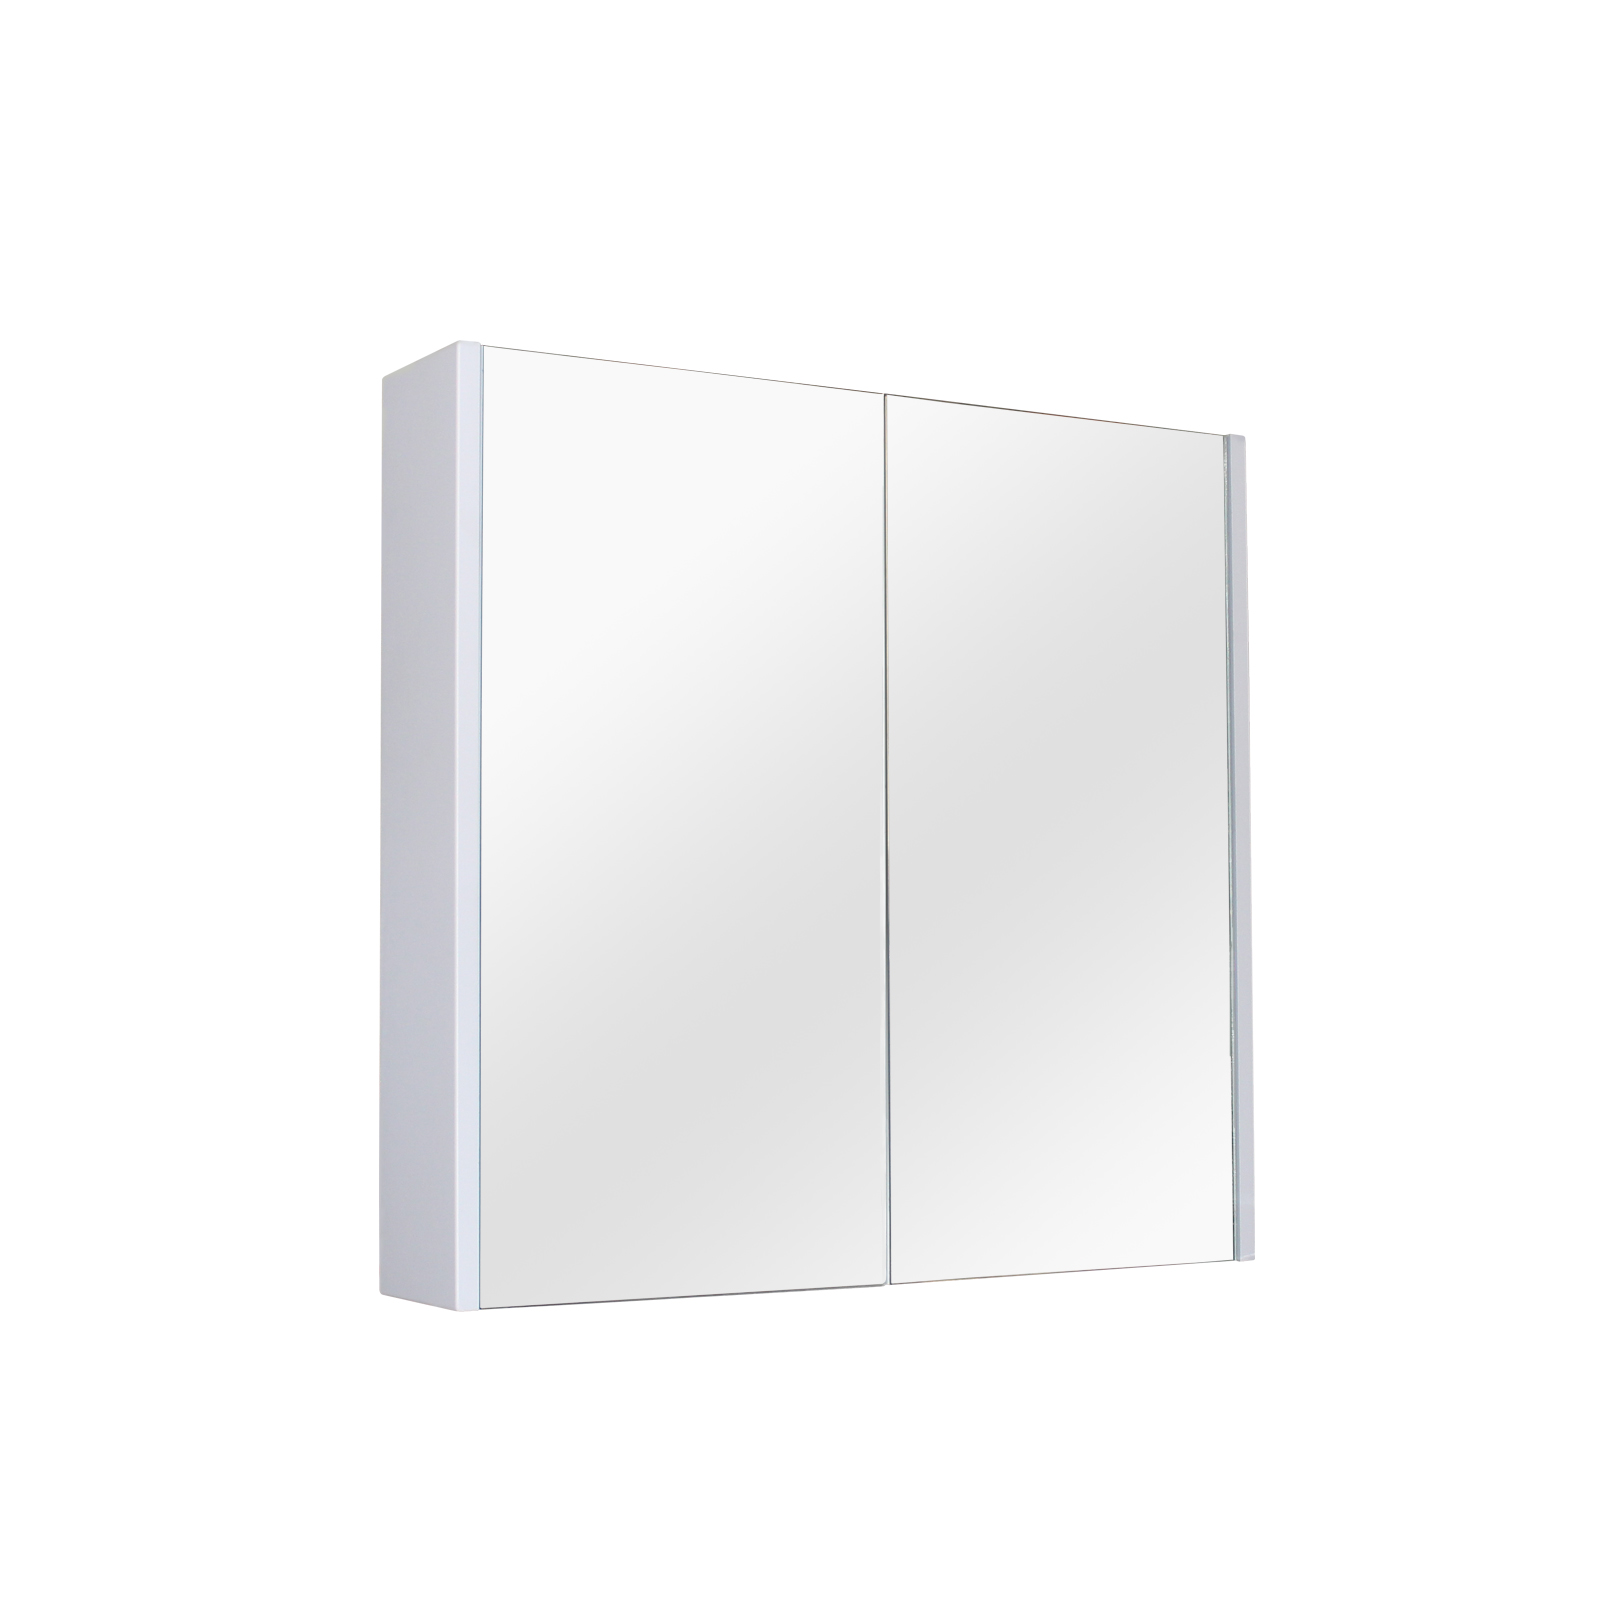 Paris 900 Shaving Cabinet - Matt White